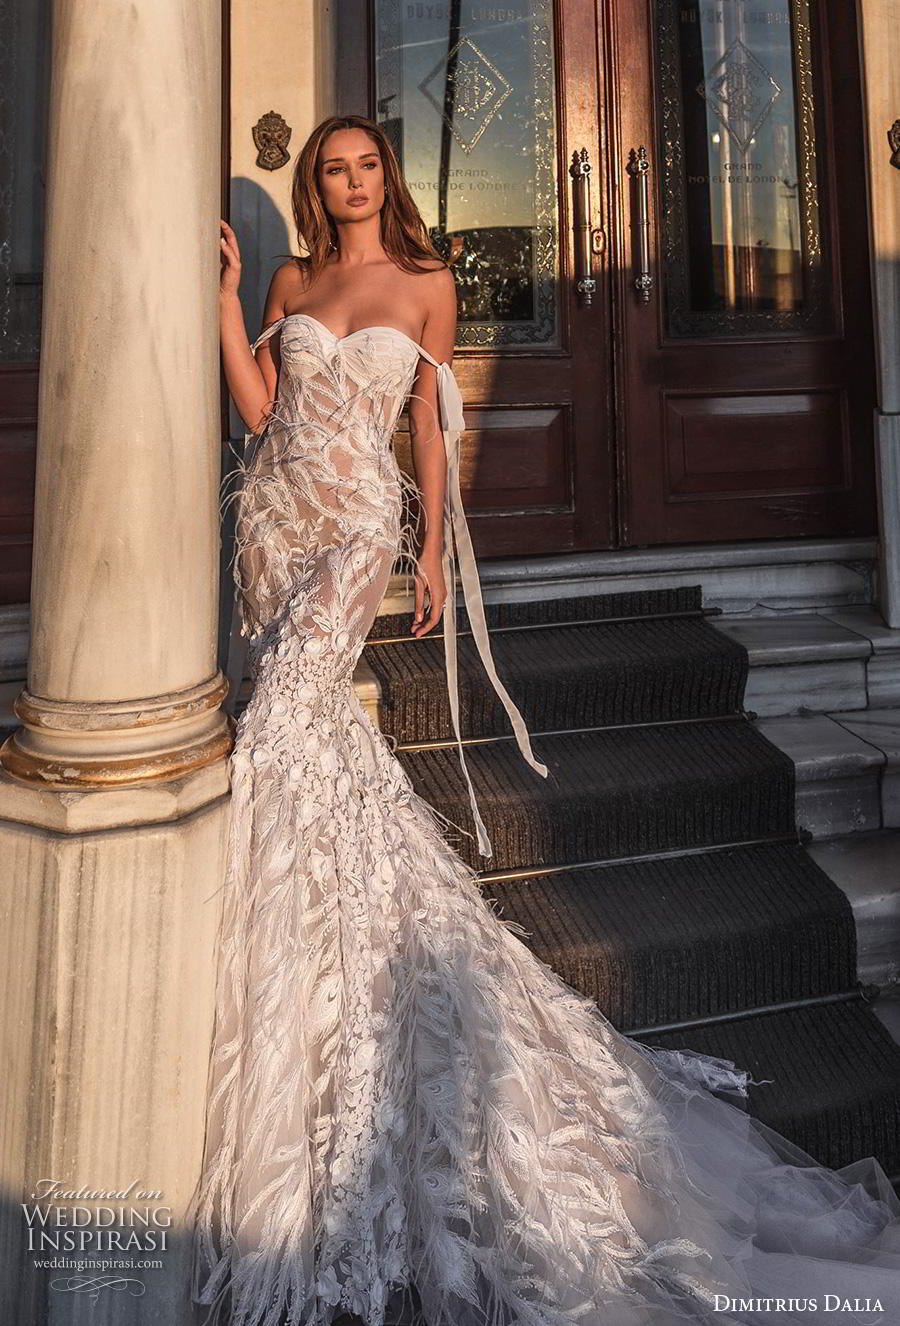 dimitrius dalia 2019 bridal off the shoulder sweetheart neckline full embellishment bustier romantic fit and flare wedding dress backless low back chapel train (13) mv